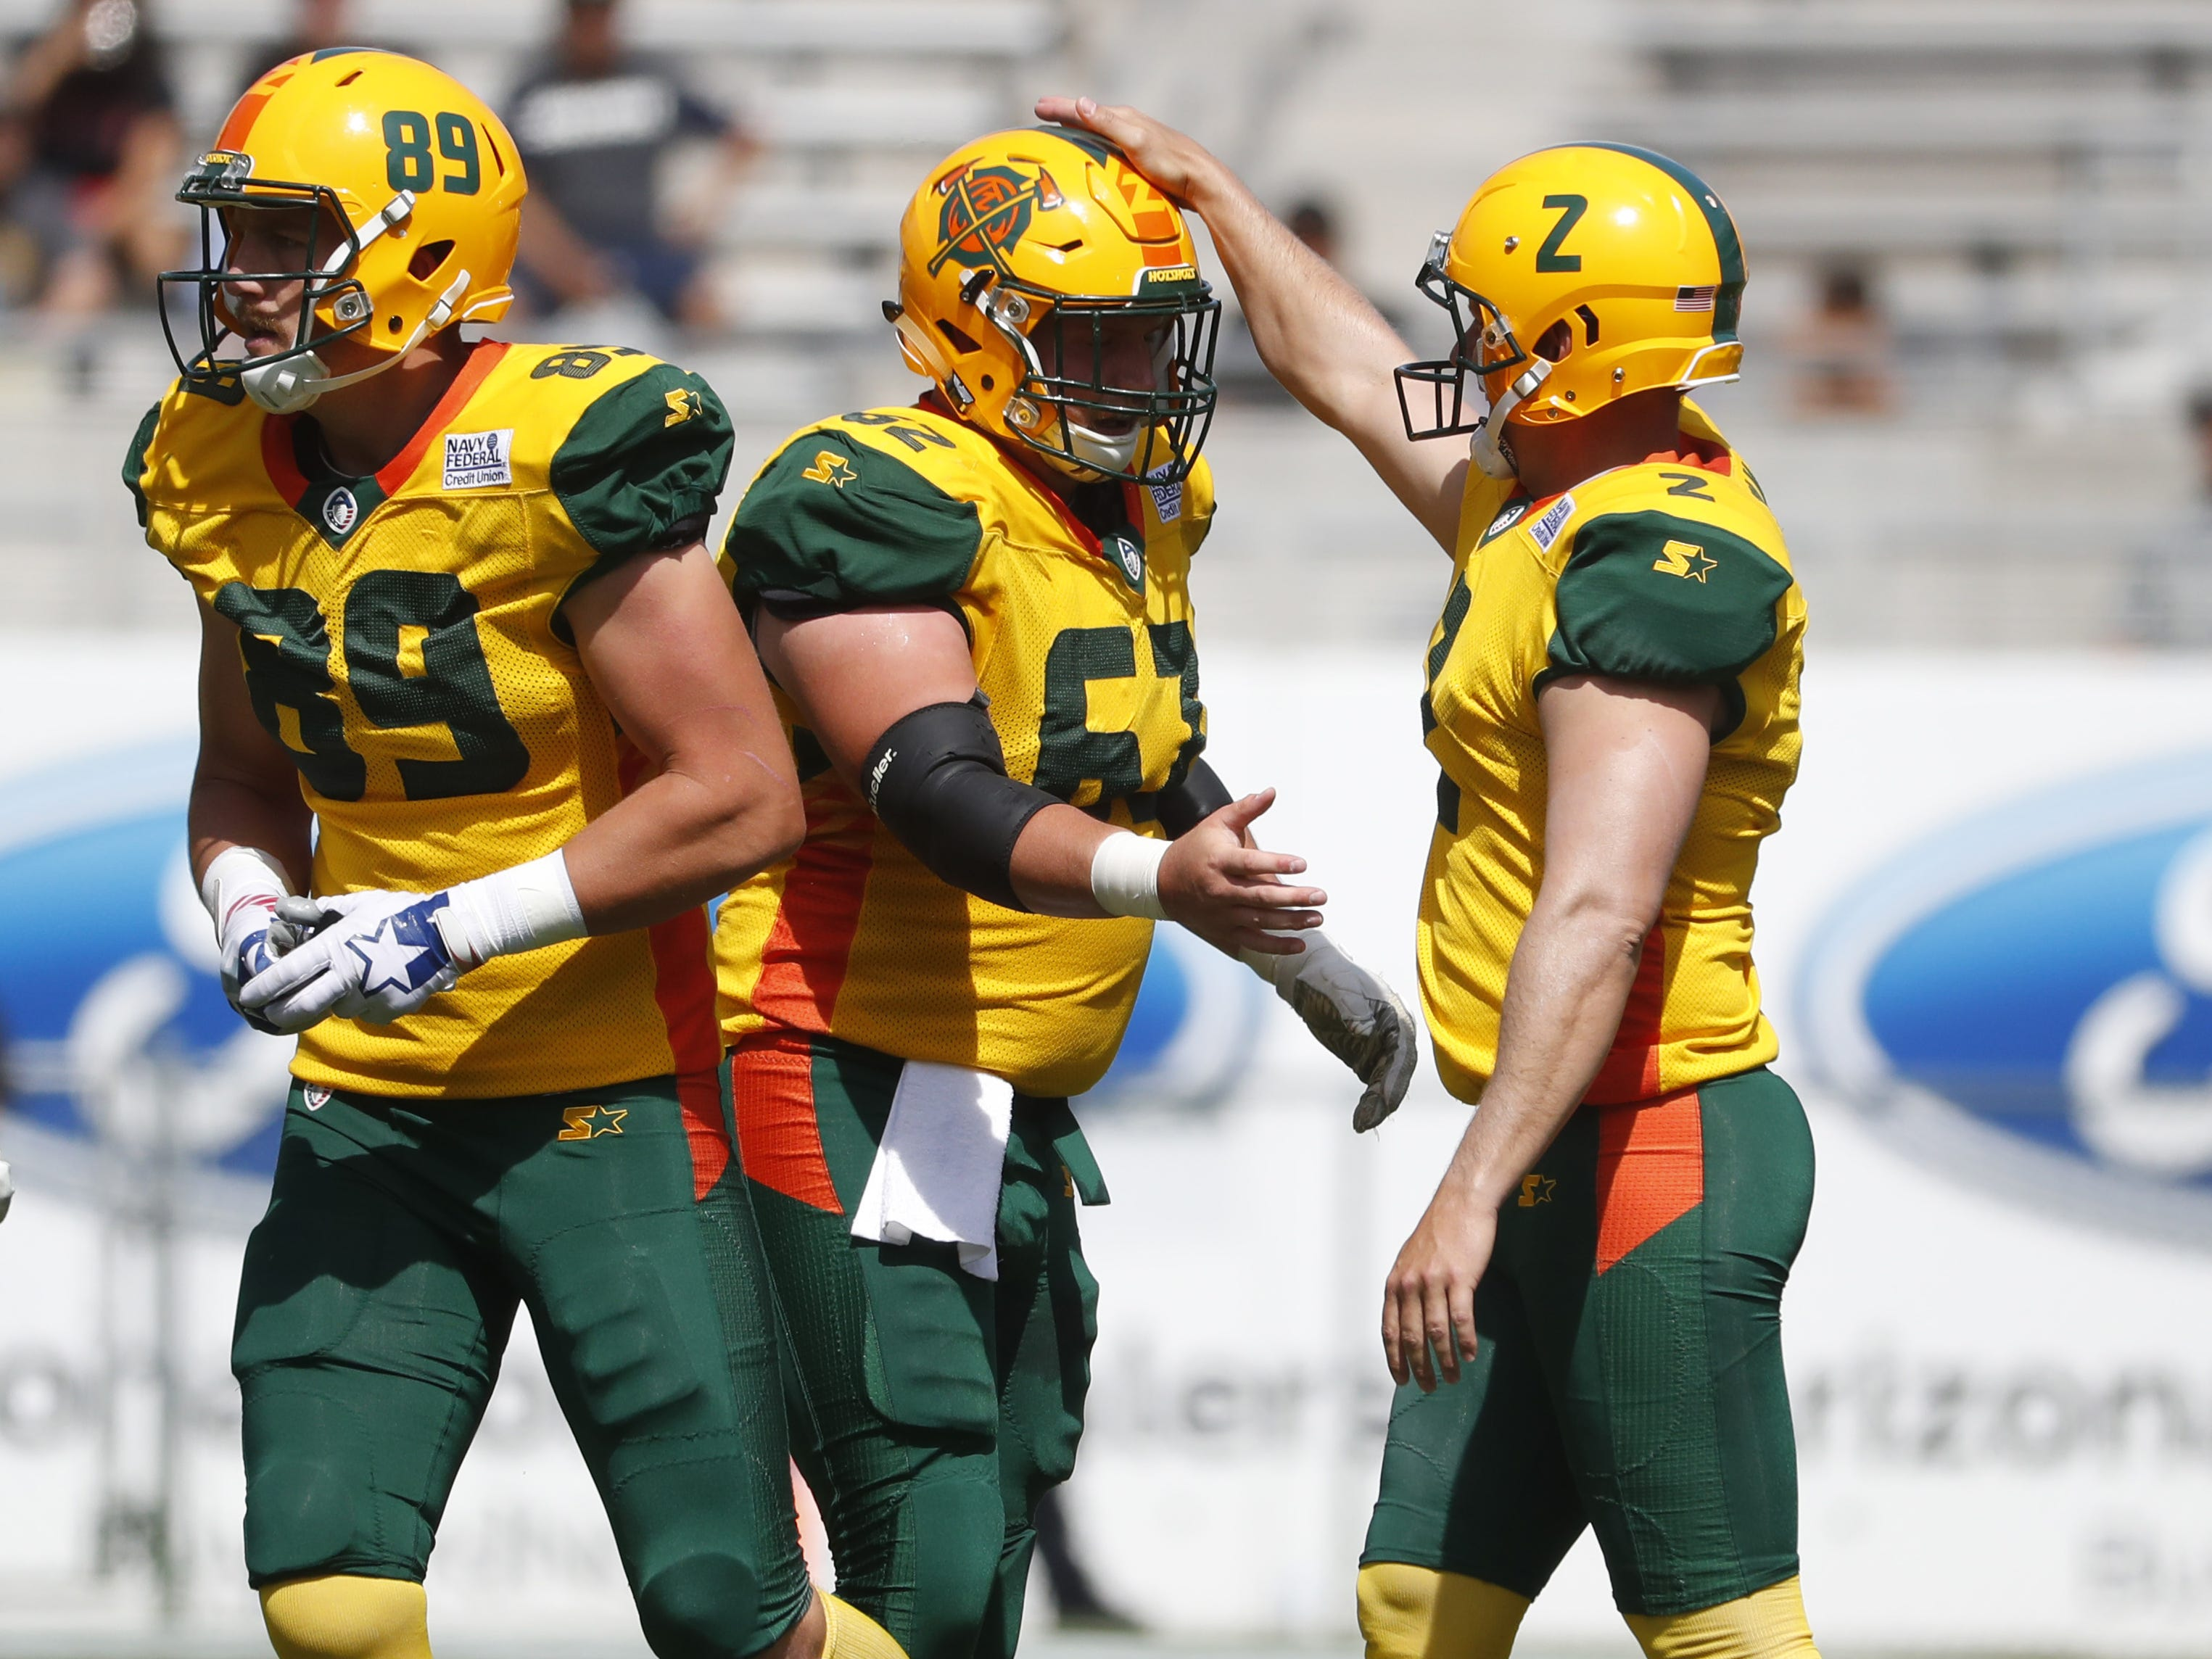 Hotshot's Jacob Ohnesorge (62) celebrates with Nick Folk (2) after Folk made a field goal during the first half at Sun Devil Stadium in Tempe, Ariz. on March 24, 2019.